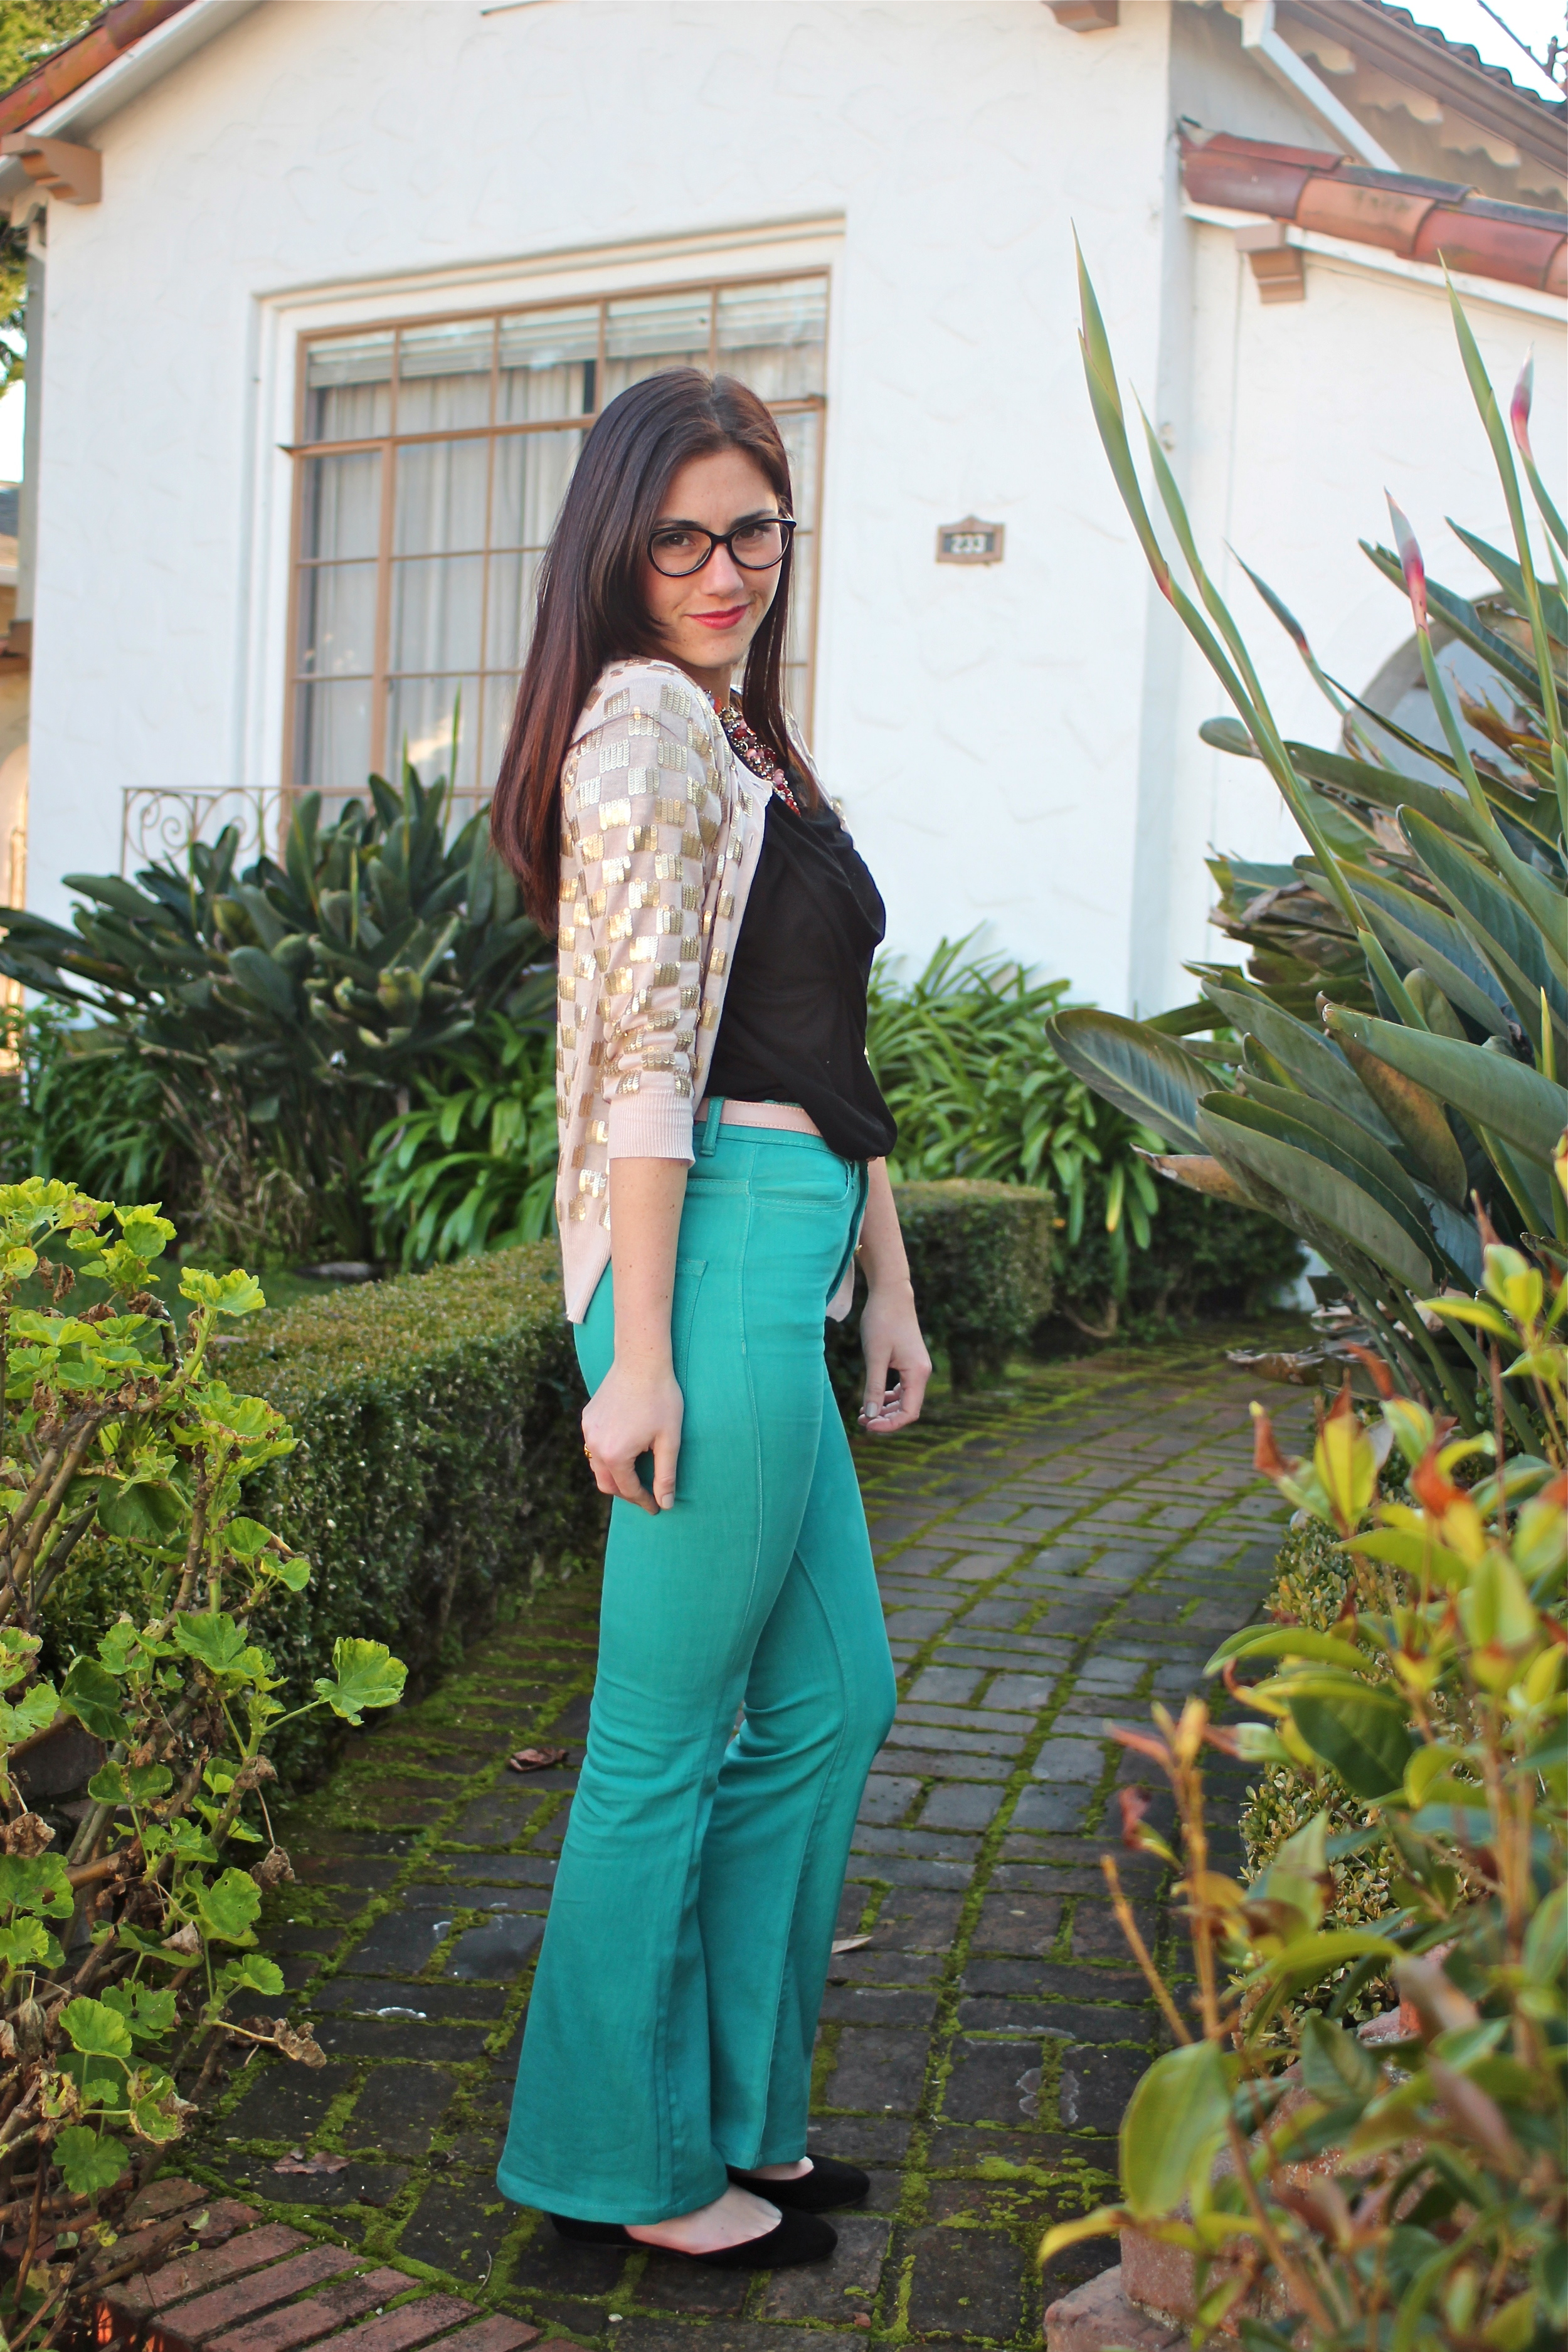 Sequin Checkered Cardigan : French Connection;  Black Twist Front Tee : Jigsaw London;  Teal High Rise Flares : BDG, Urban Outfitters;  Flats : Dolce Vita, Jigsaw London;  Necklace : Anthropologie